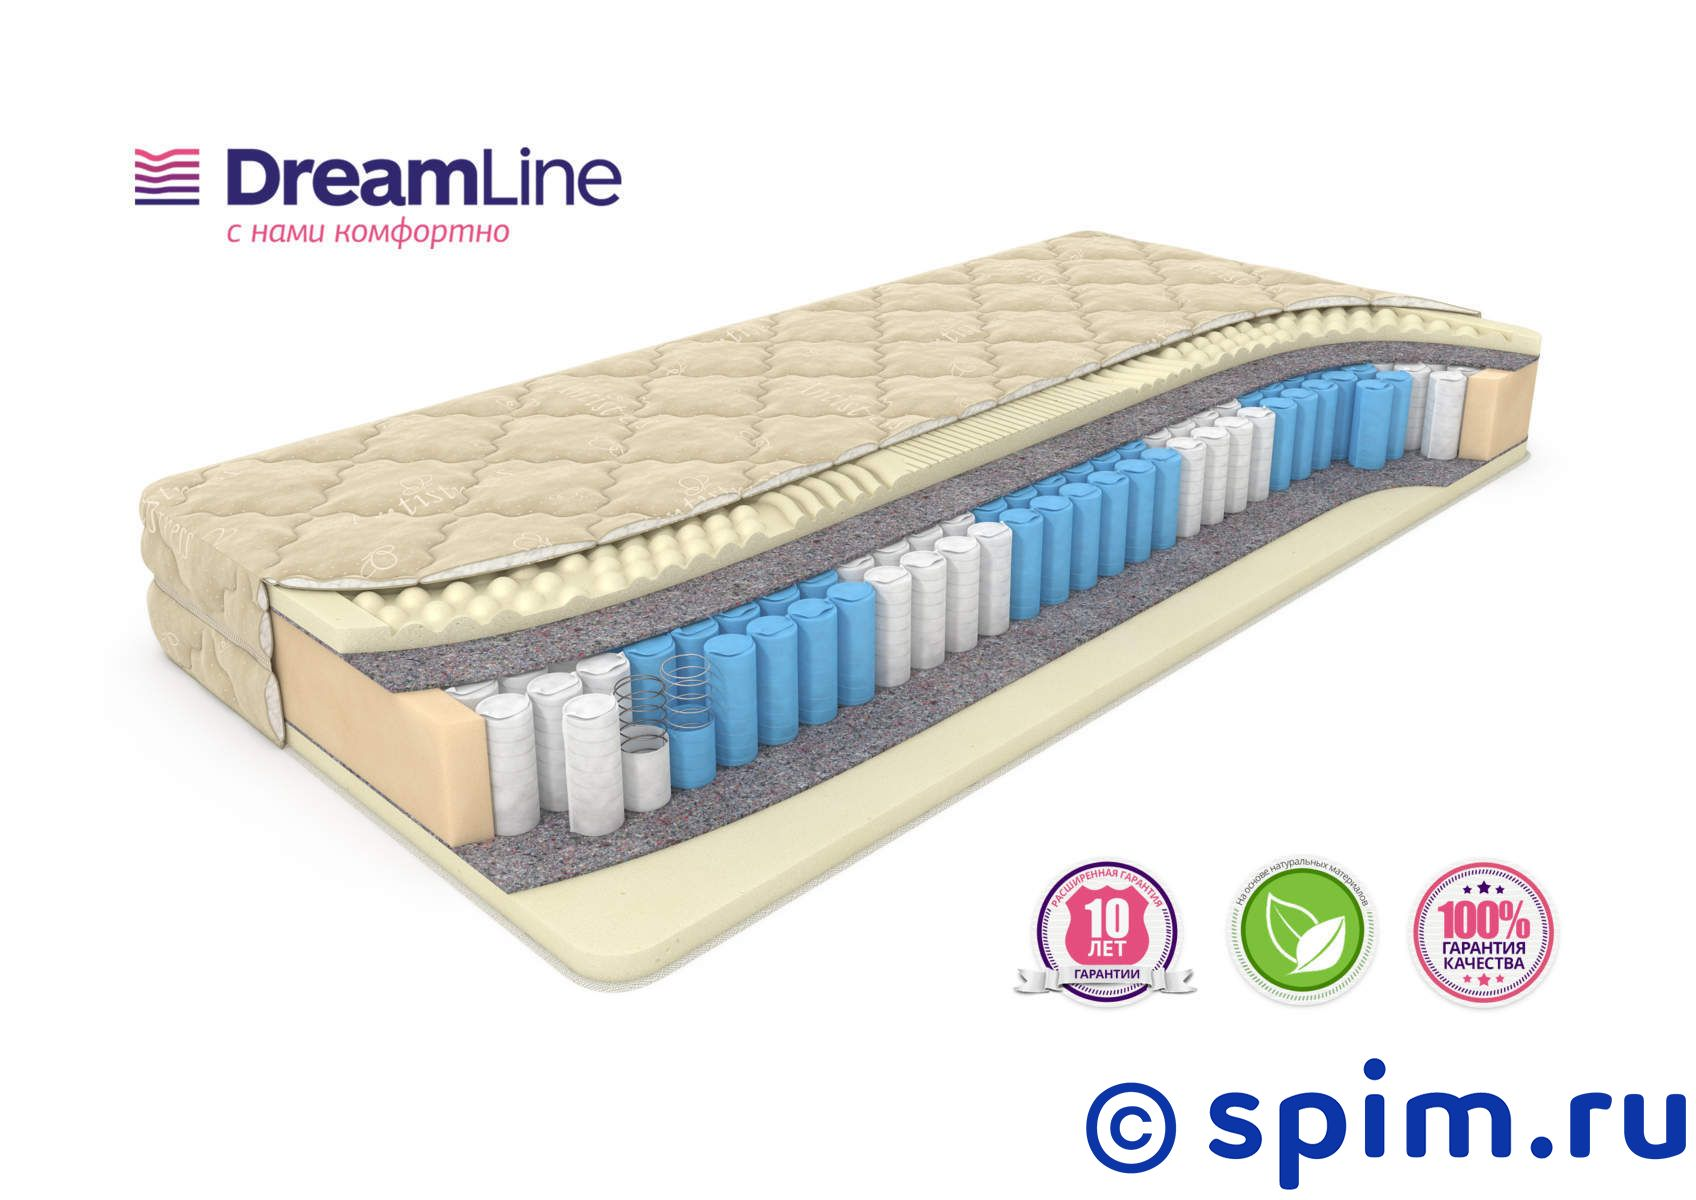 Матрас DreamLine Sleep Smart Zone 150х195 см матрас dreamline mix smart zone 120x195